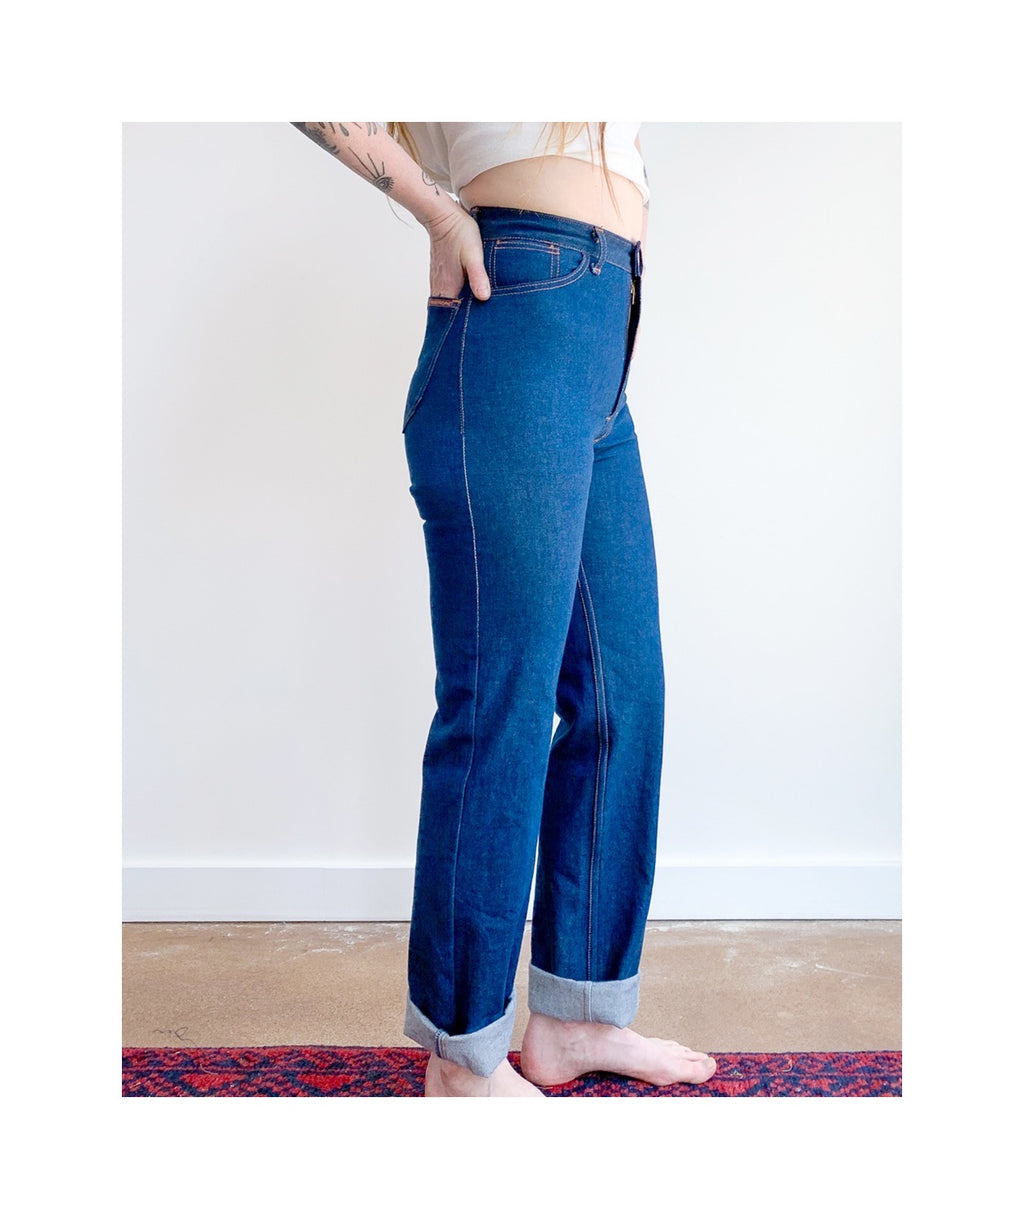 Waist down photo of model wearing sister jeans in classic blue itochu denim facing the right.